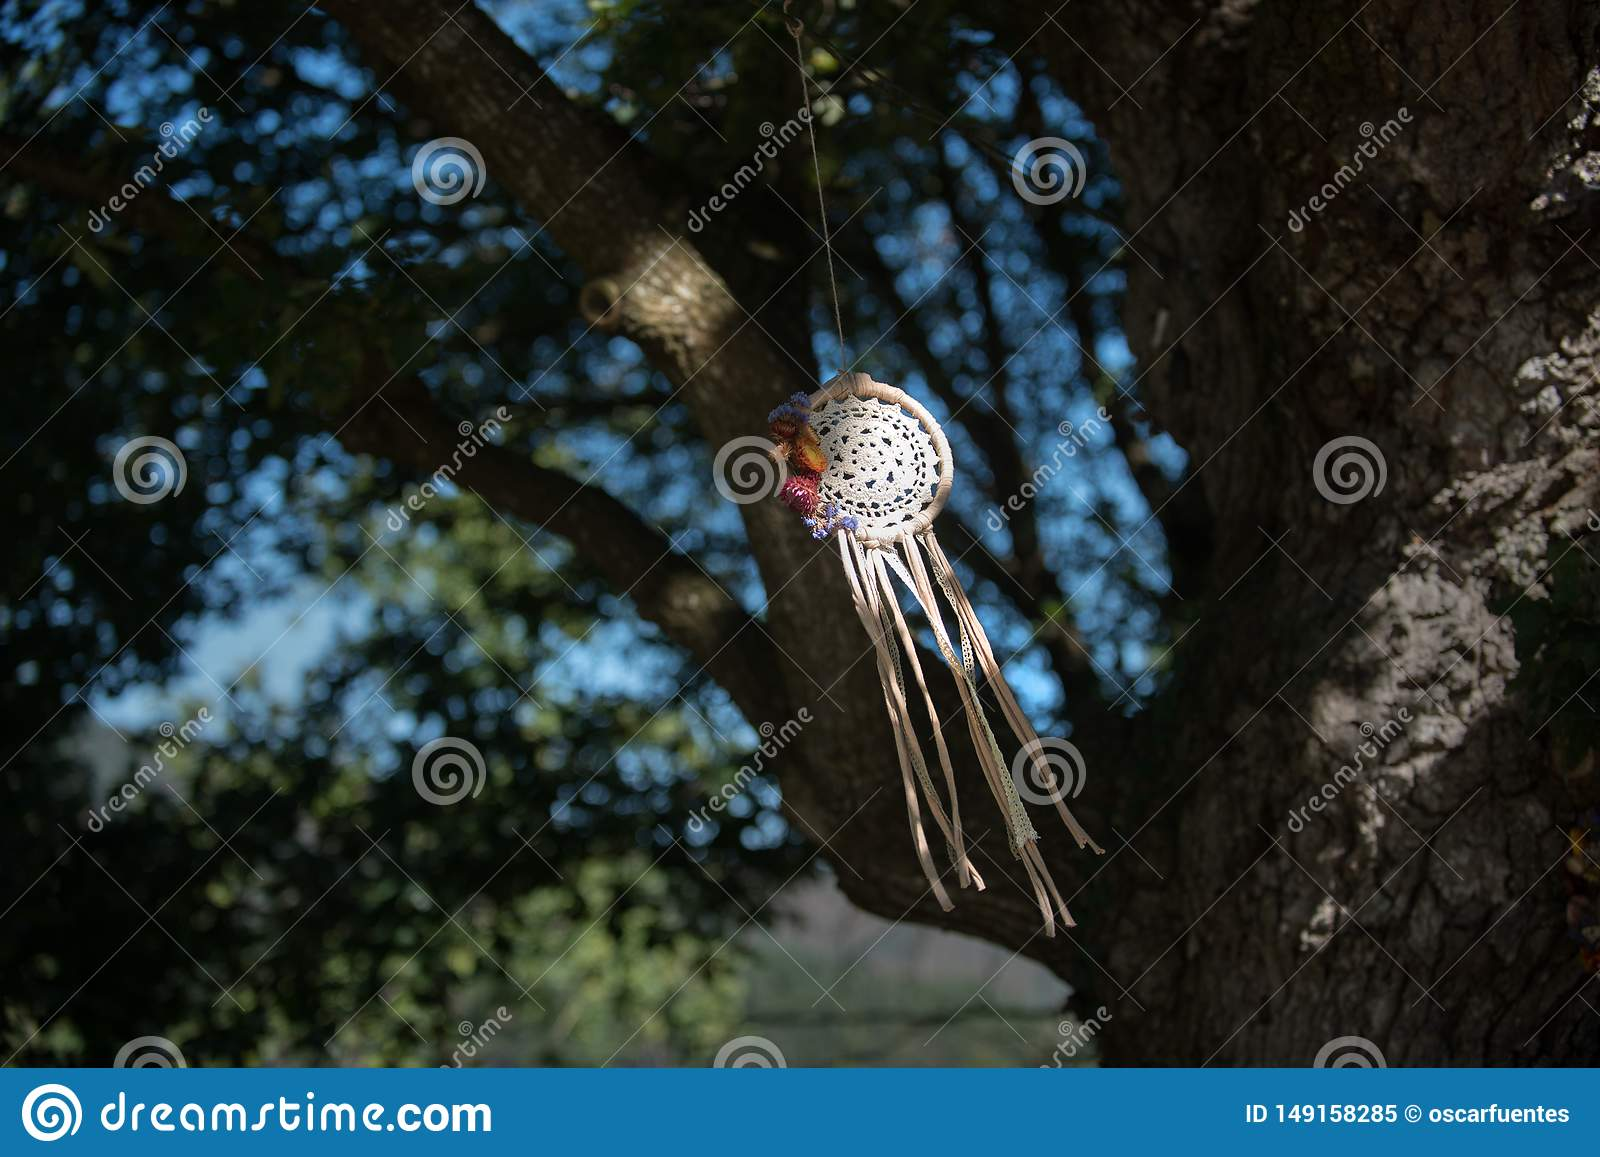 Dream Catcher with natural background in vintage style. Boho chic, ethnic amulet